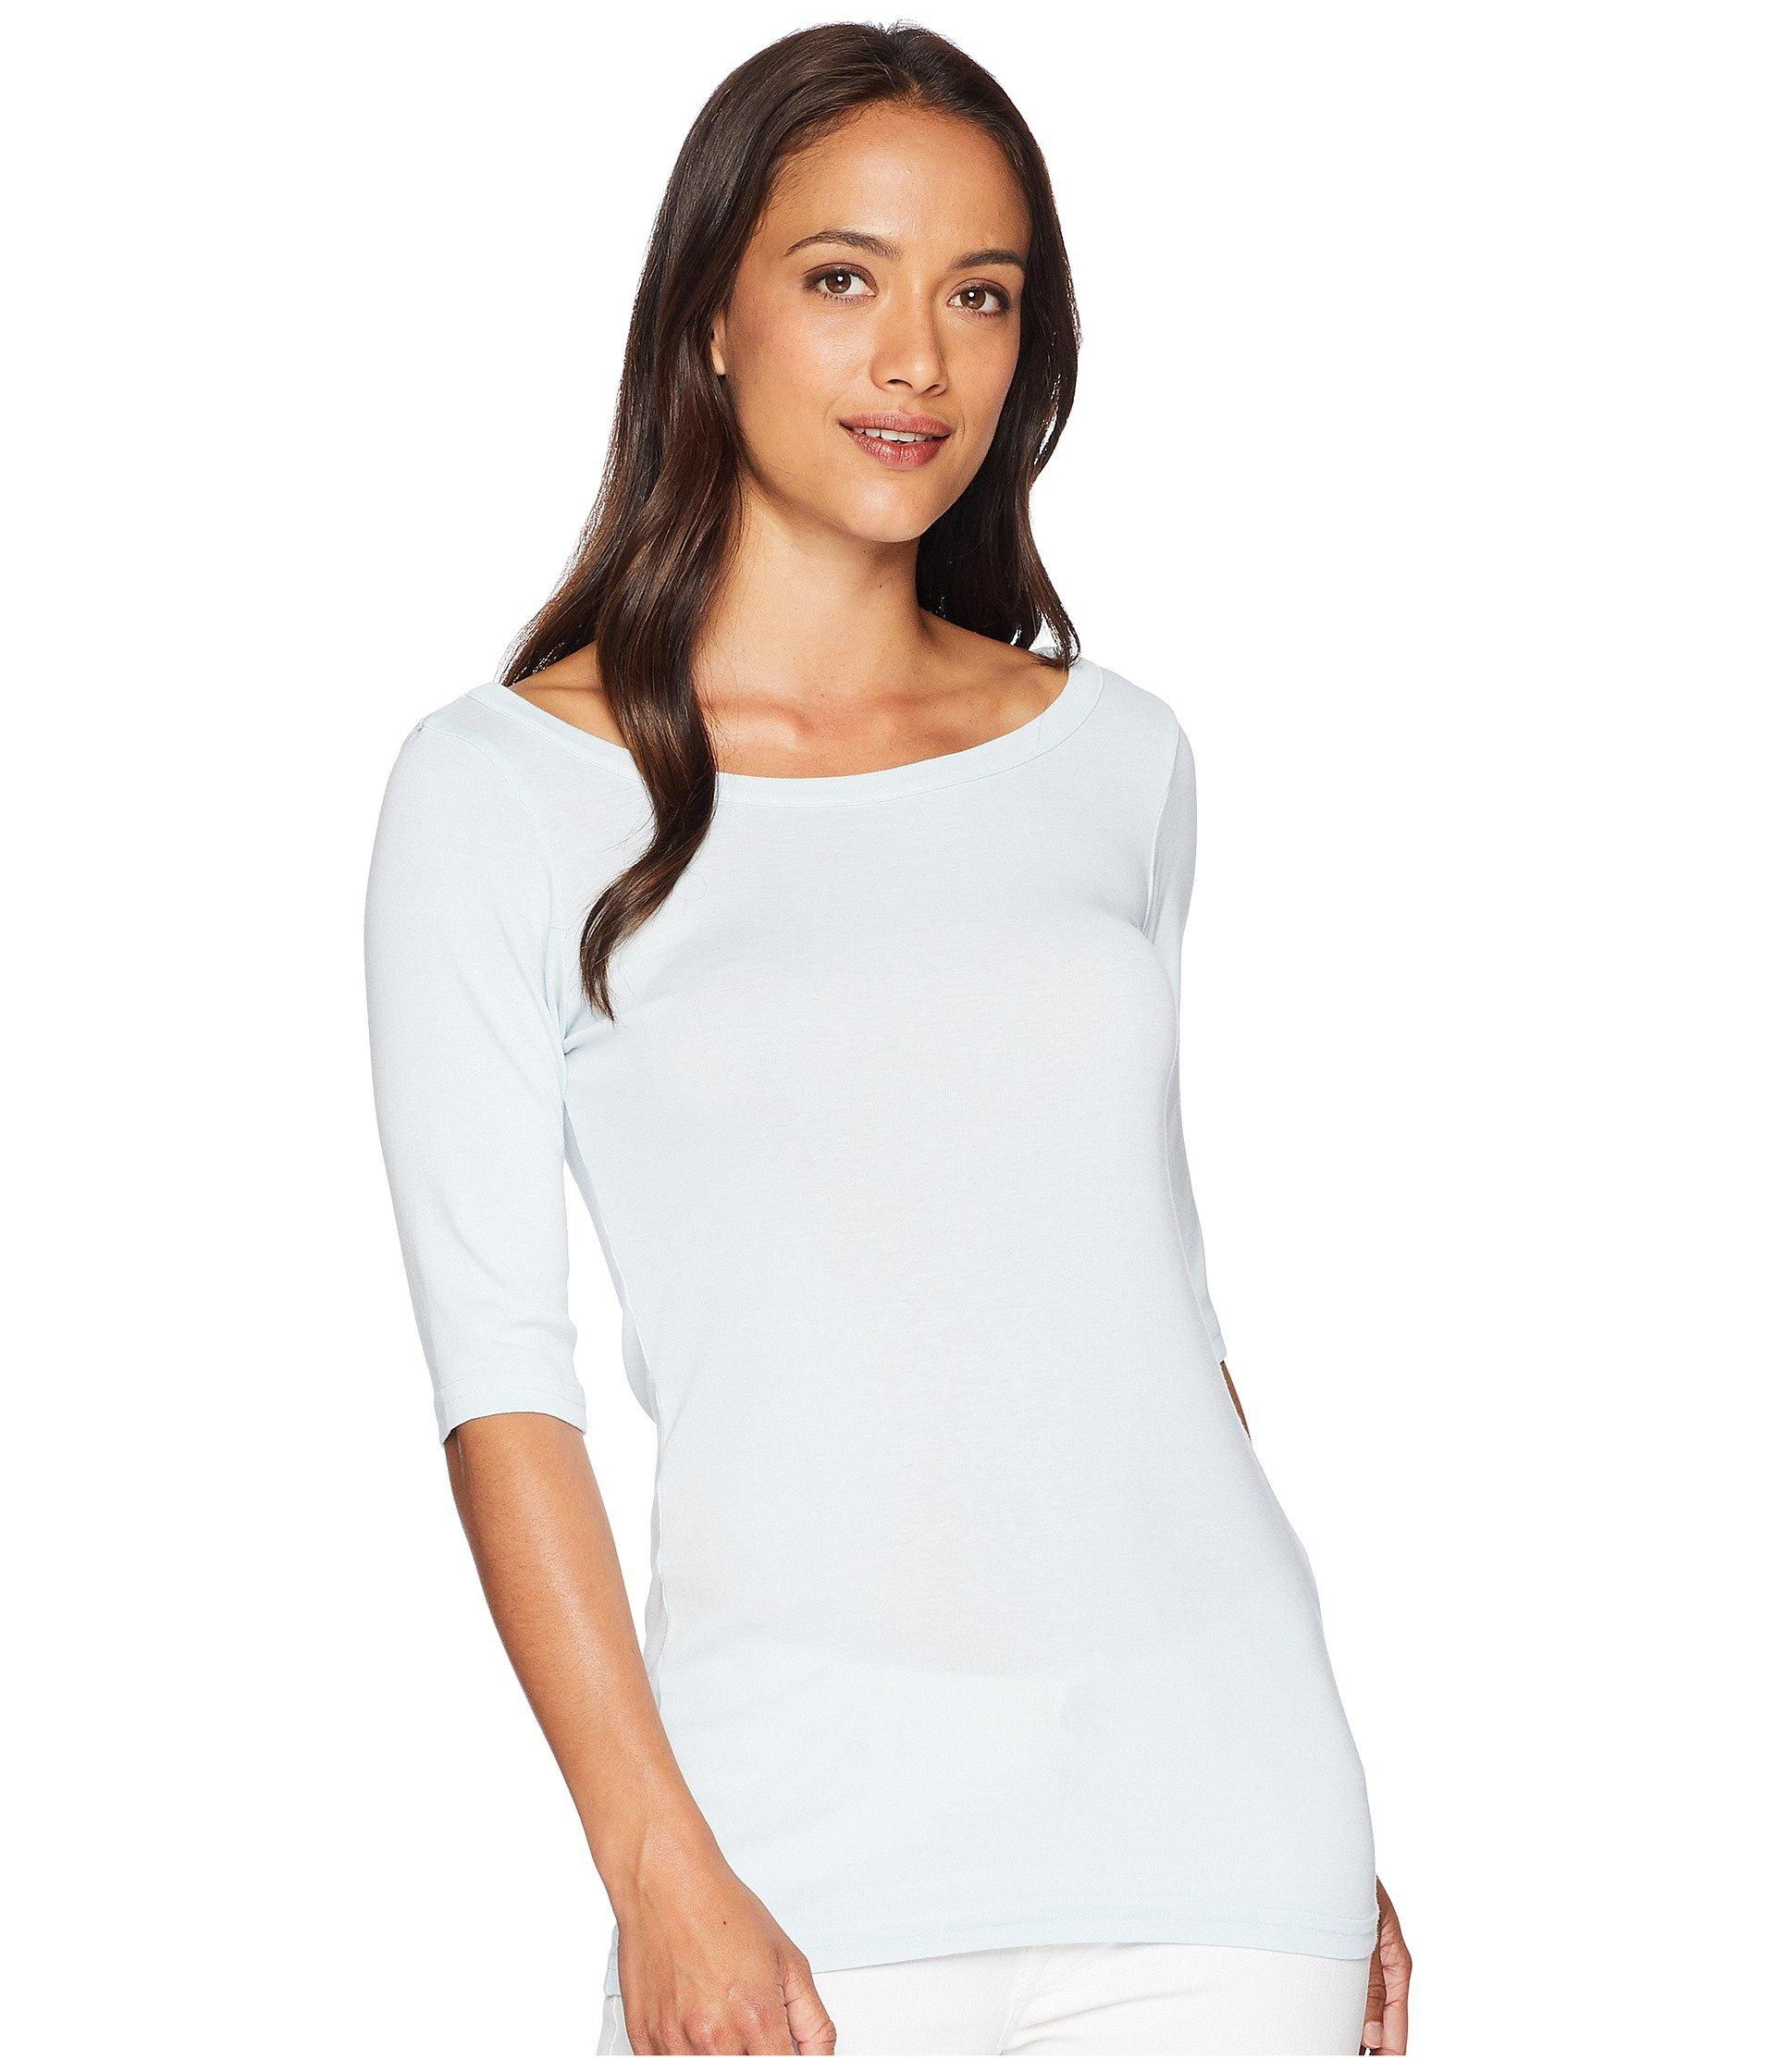 04f1ac19214 MICHAEL STARS WIDE SCOOP NECK ELBOW SLEEVE TEE - Google Search